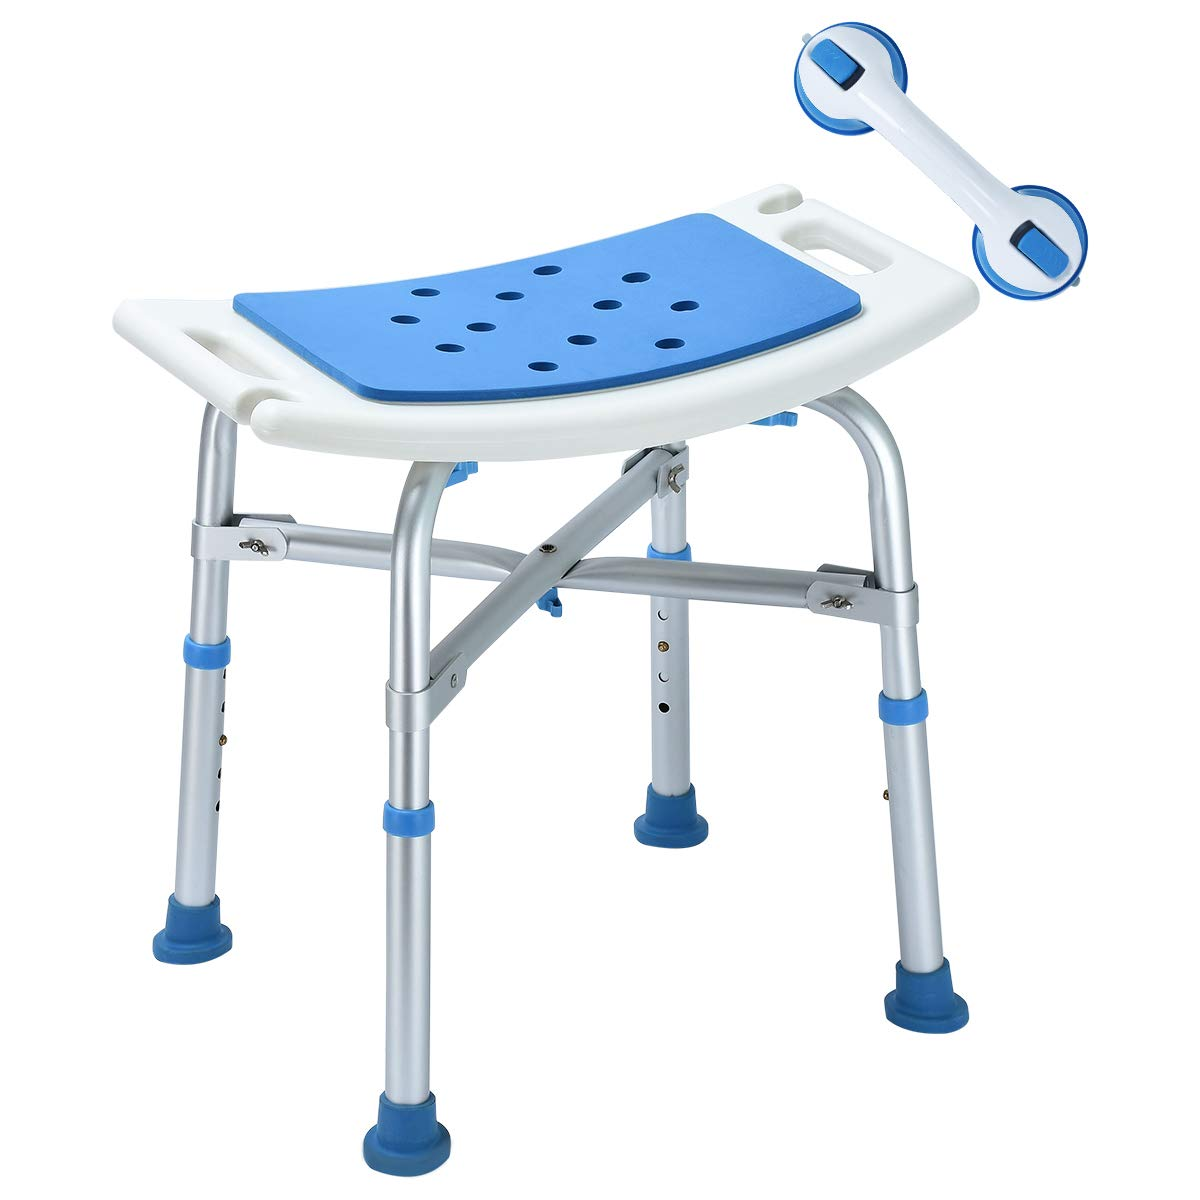 2018 Upgraded 500 lbs Cap. Shower Stool, Bariatric Heavy Duty Bath Chair Transfer Bench w/EVA Paded Seat and Assist Grab Bar (White/Blue)